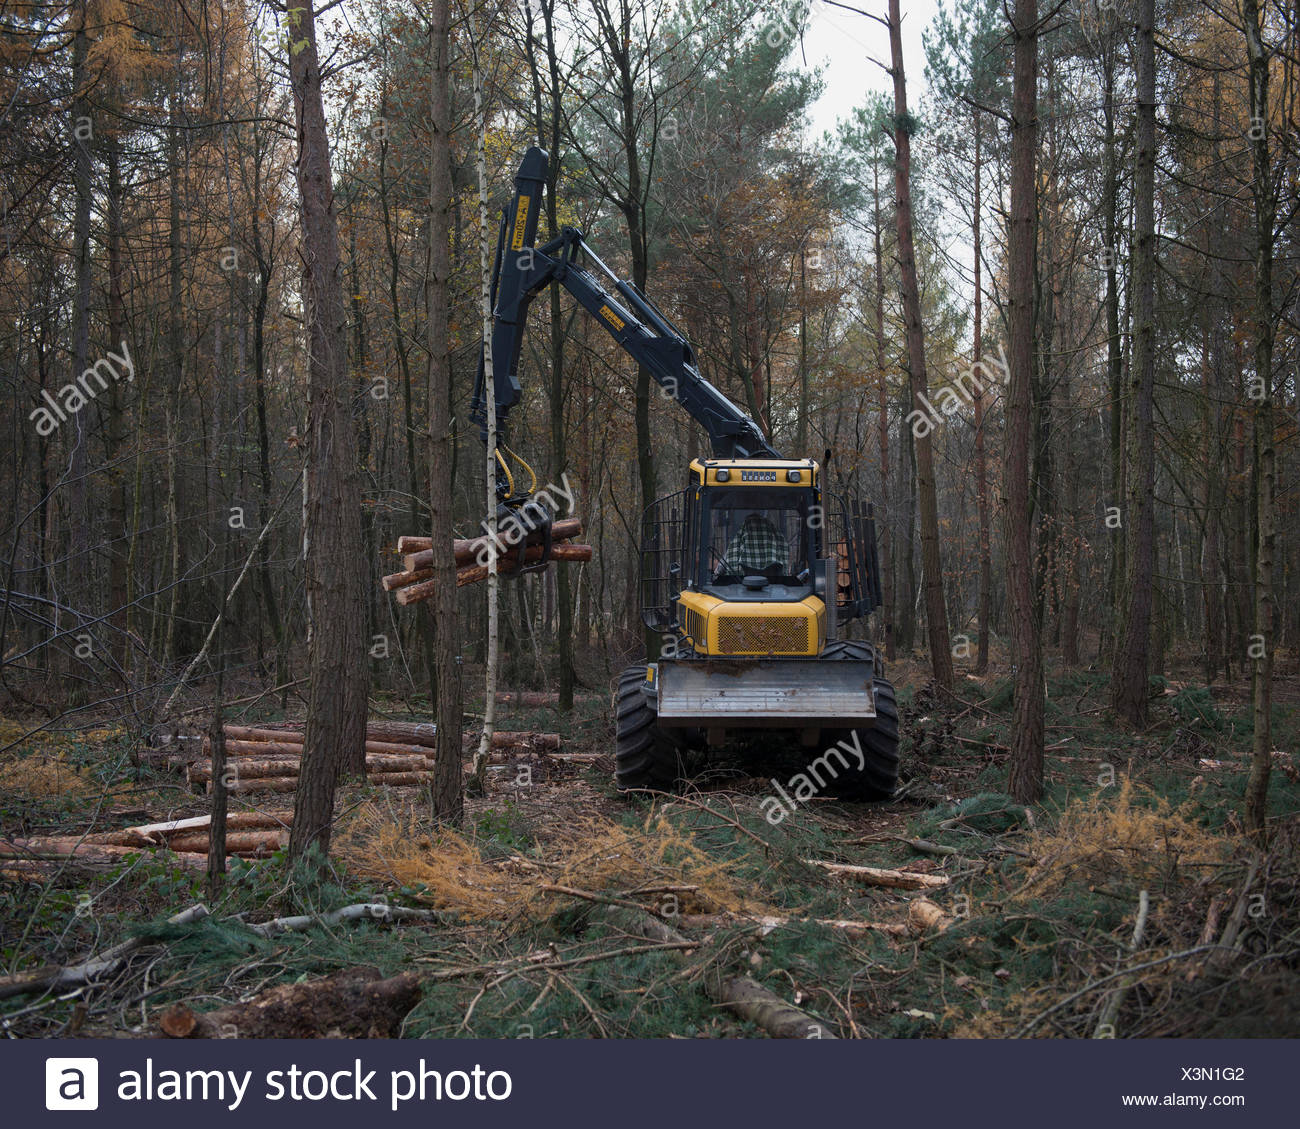 Forestry forwarder harvesting timber, working in a rough forest, Bonn, Rhineland, North Rhine-Westphalia, Germany Stock Photo